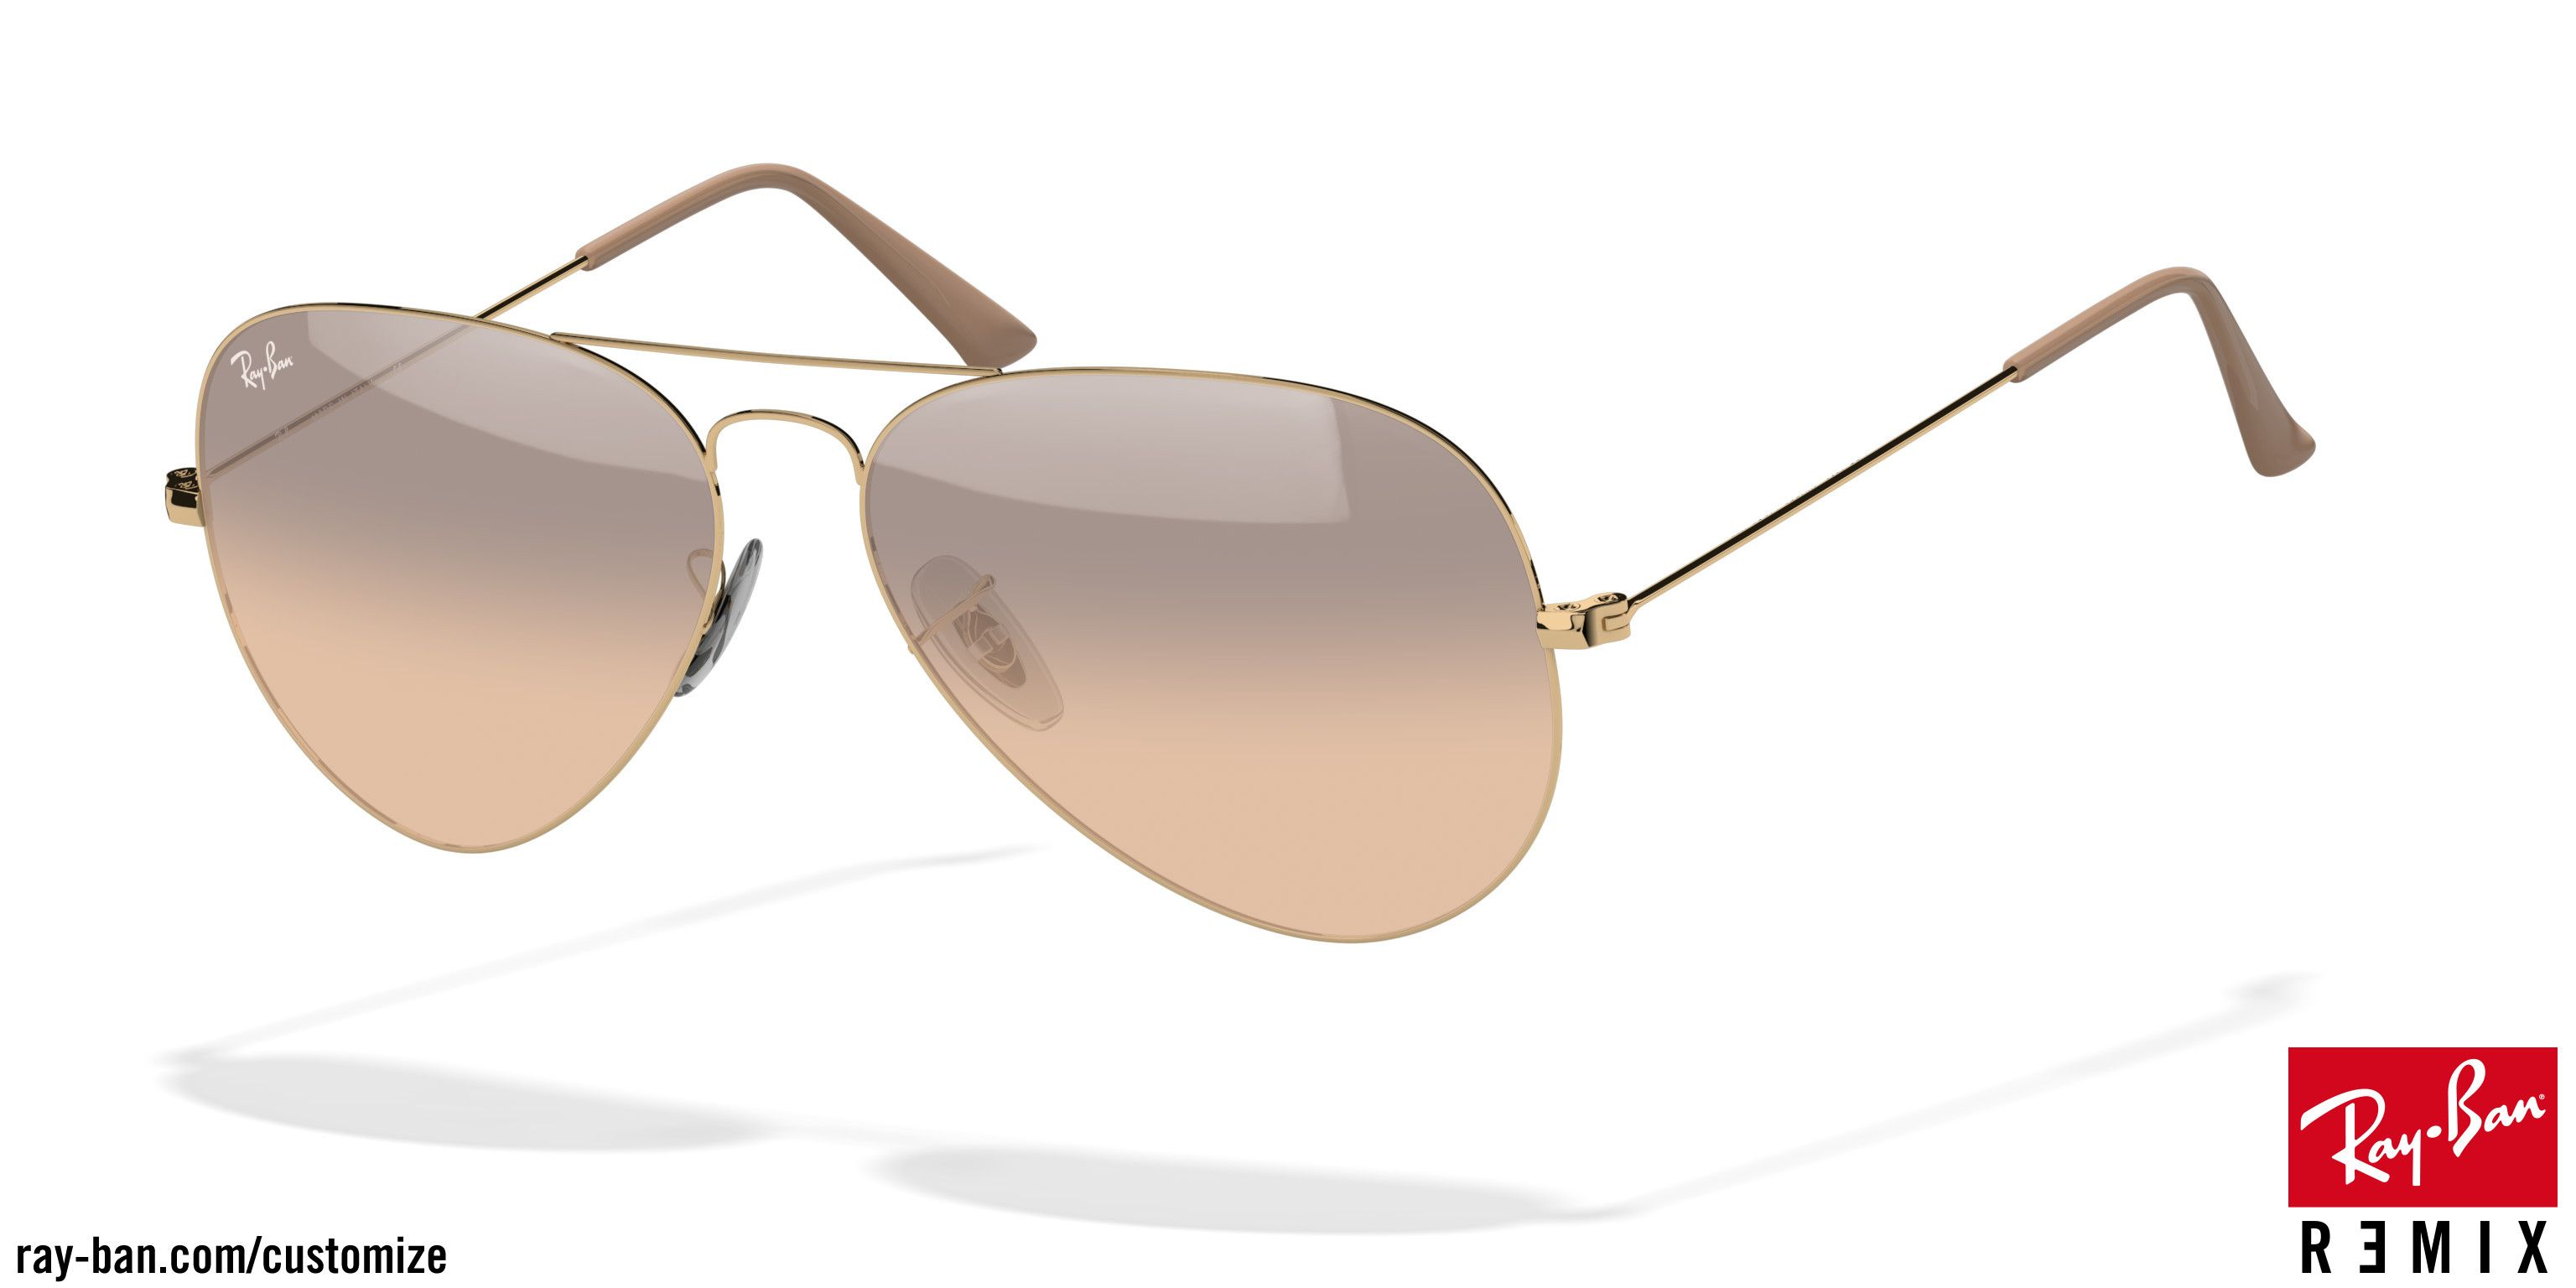 6a579ce04 Custom Ray-Ban Aviator Sunglasses. Small size, gold frame, brown/pink/silver  mirror lens.